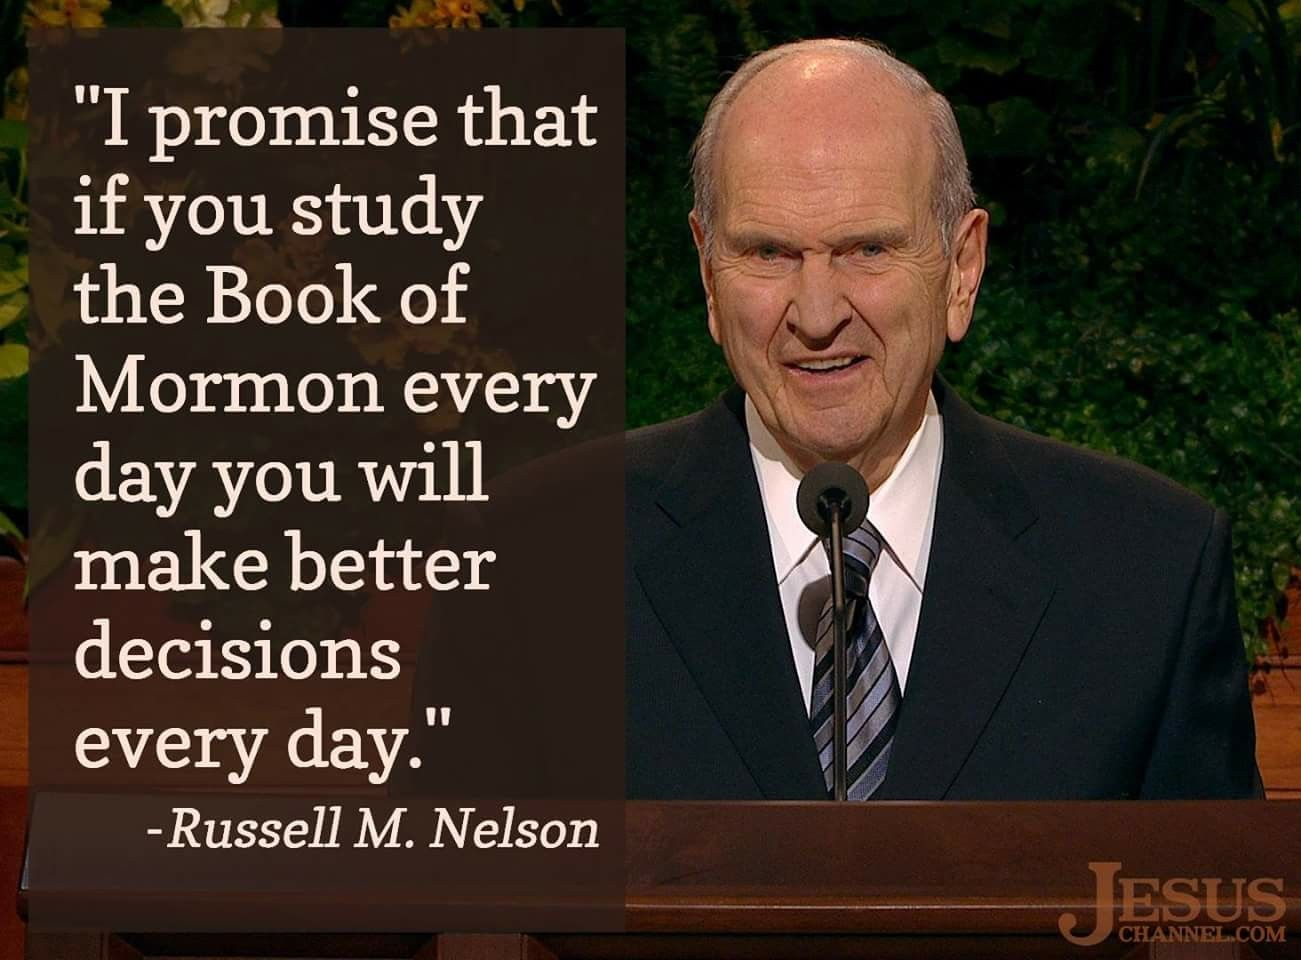 I promise that if you study the Book of Mormon every day you will